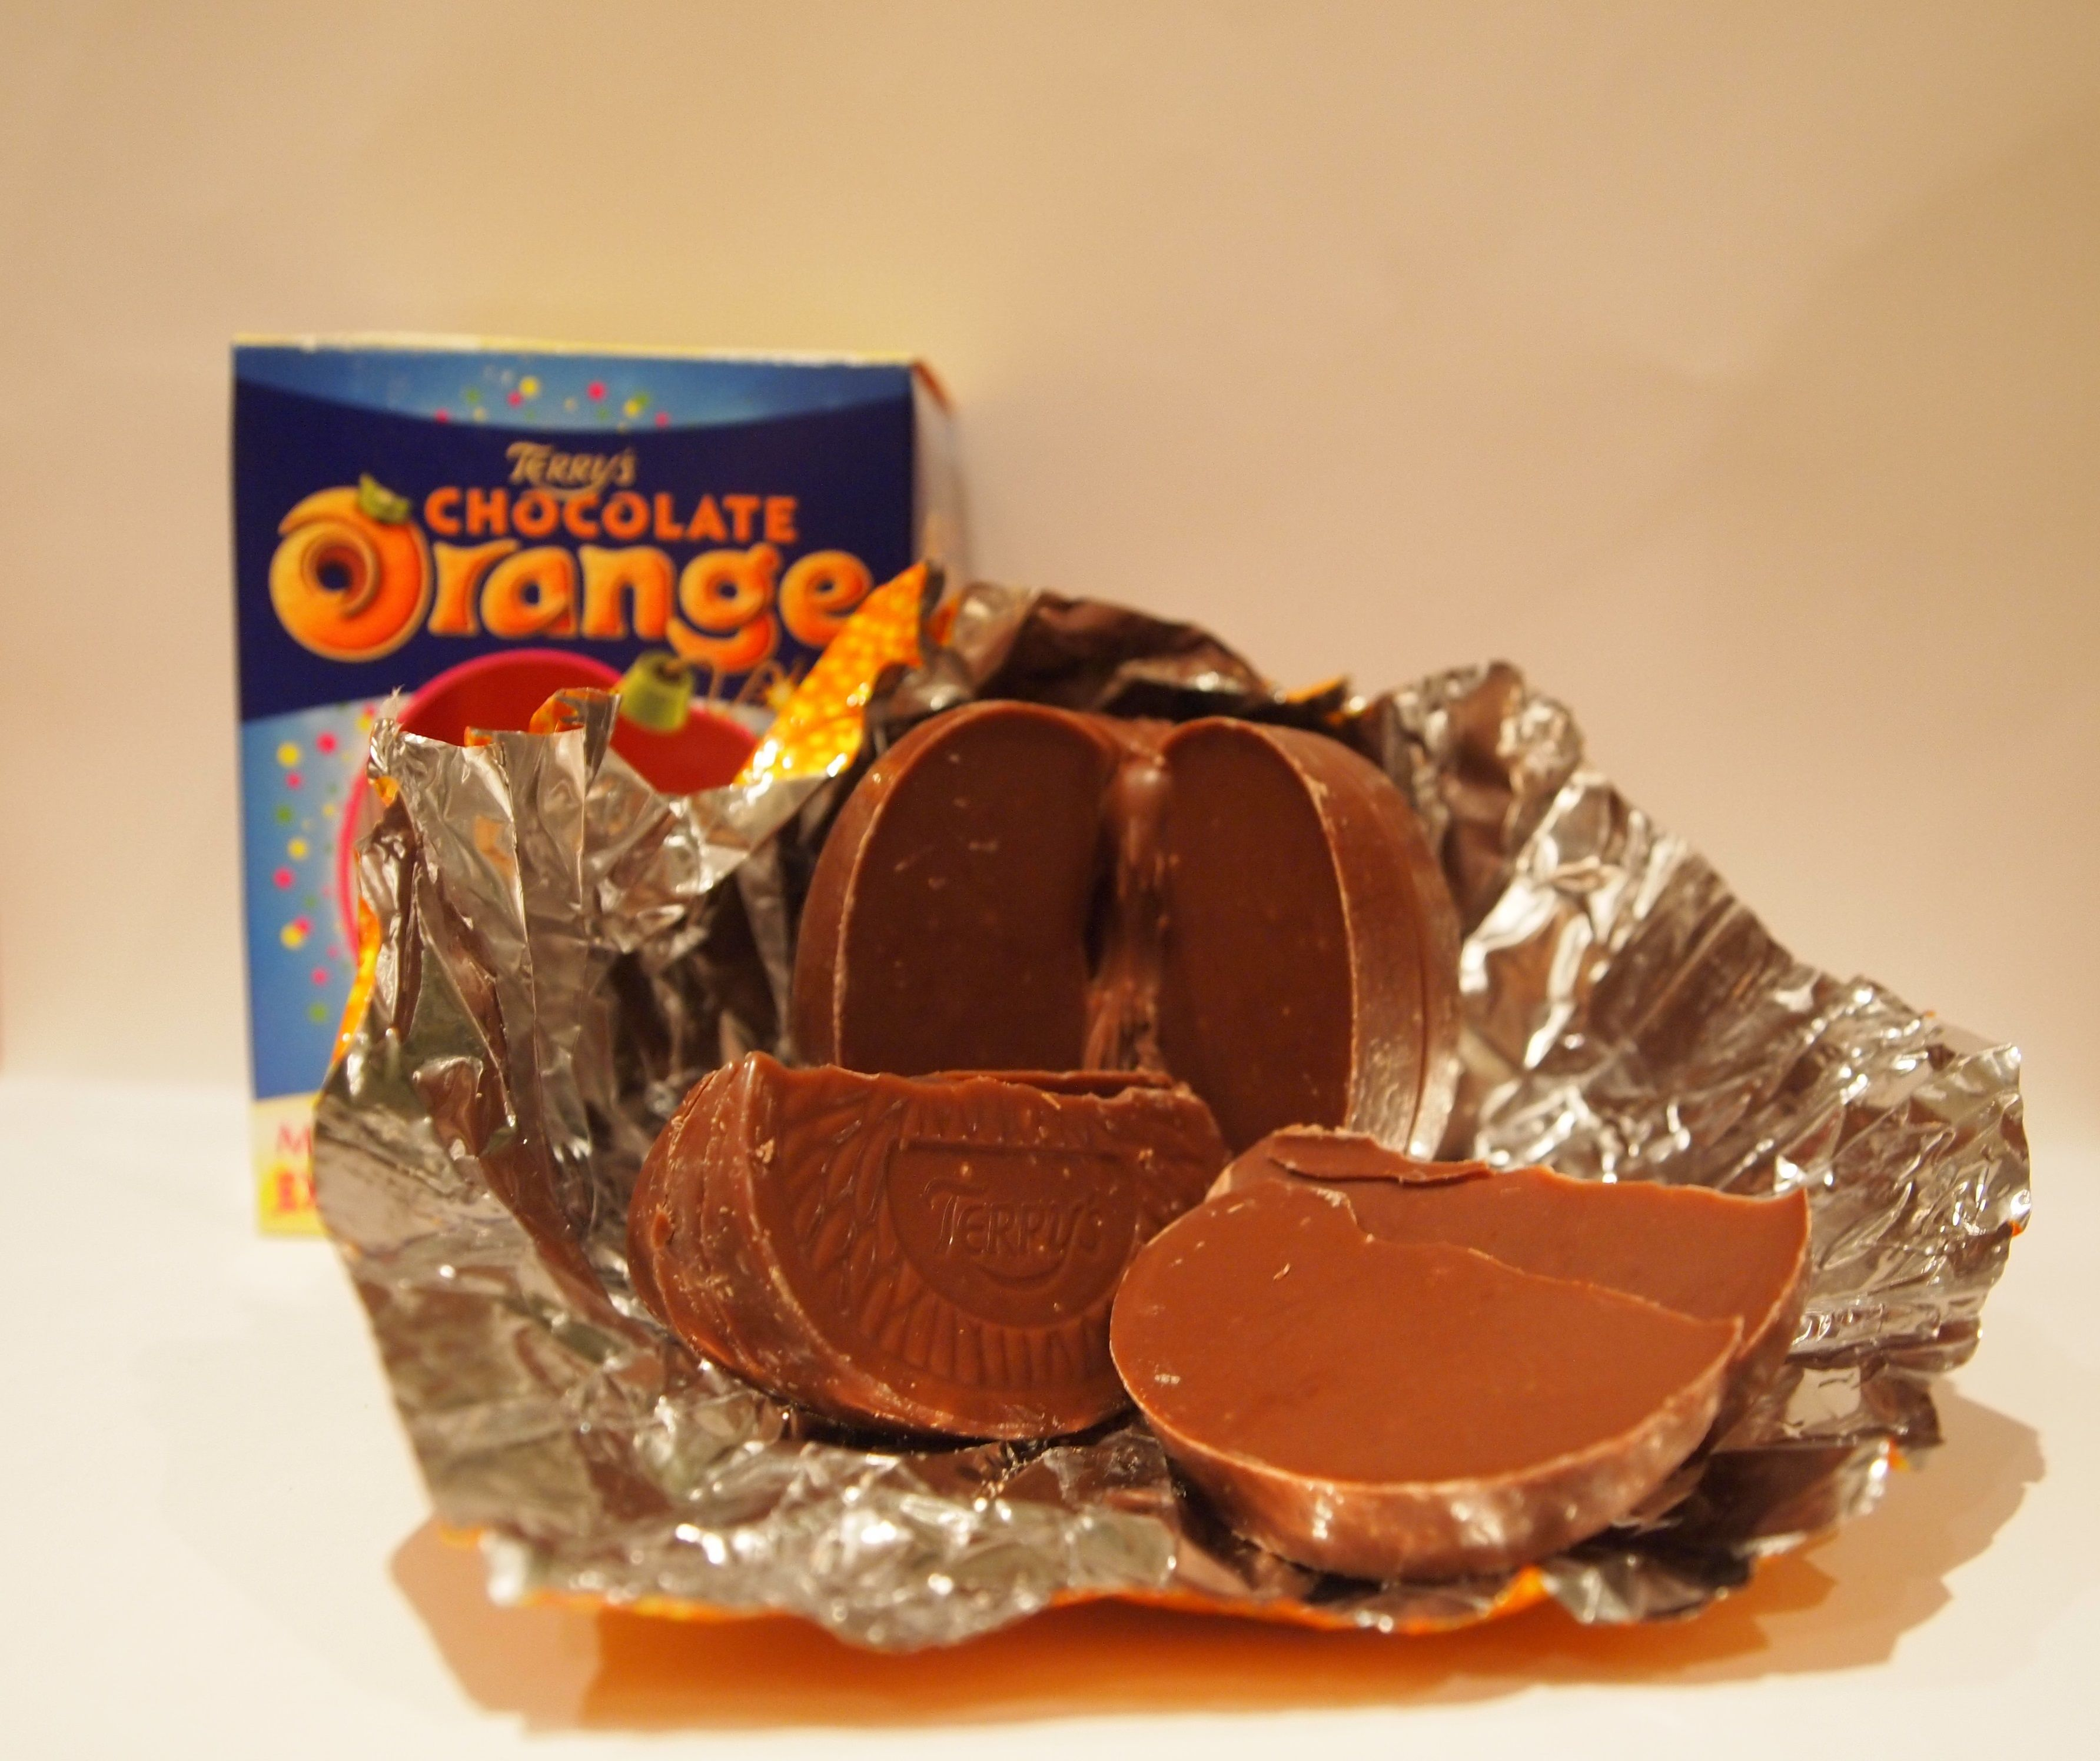 terry's chocolate orange exploding candy - Google Search | Basic ...